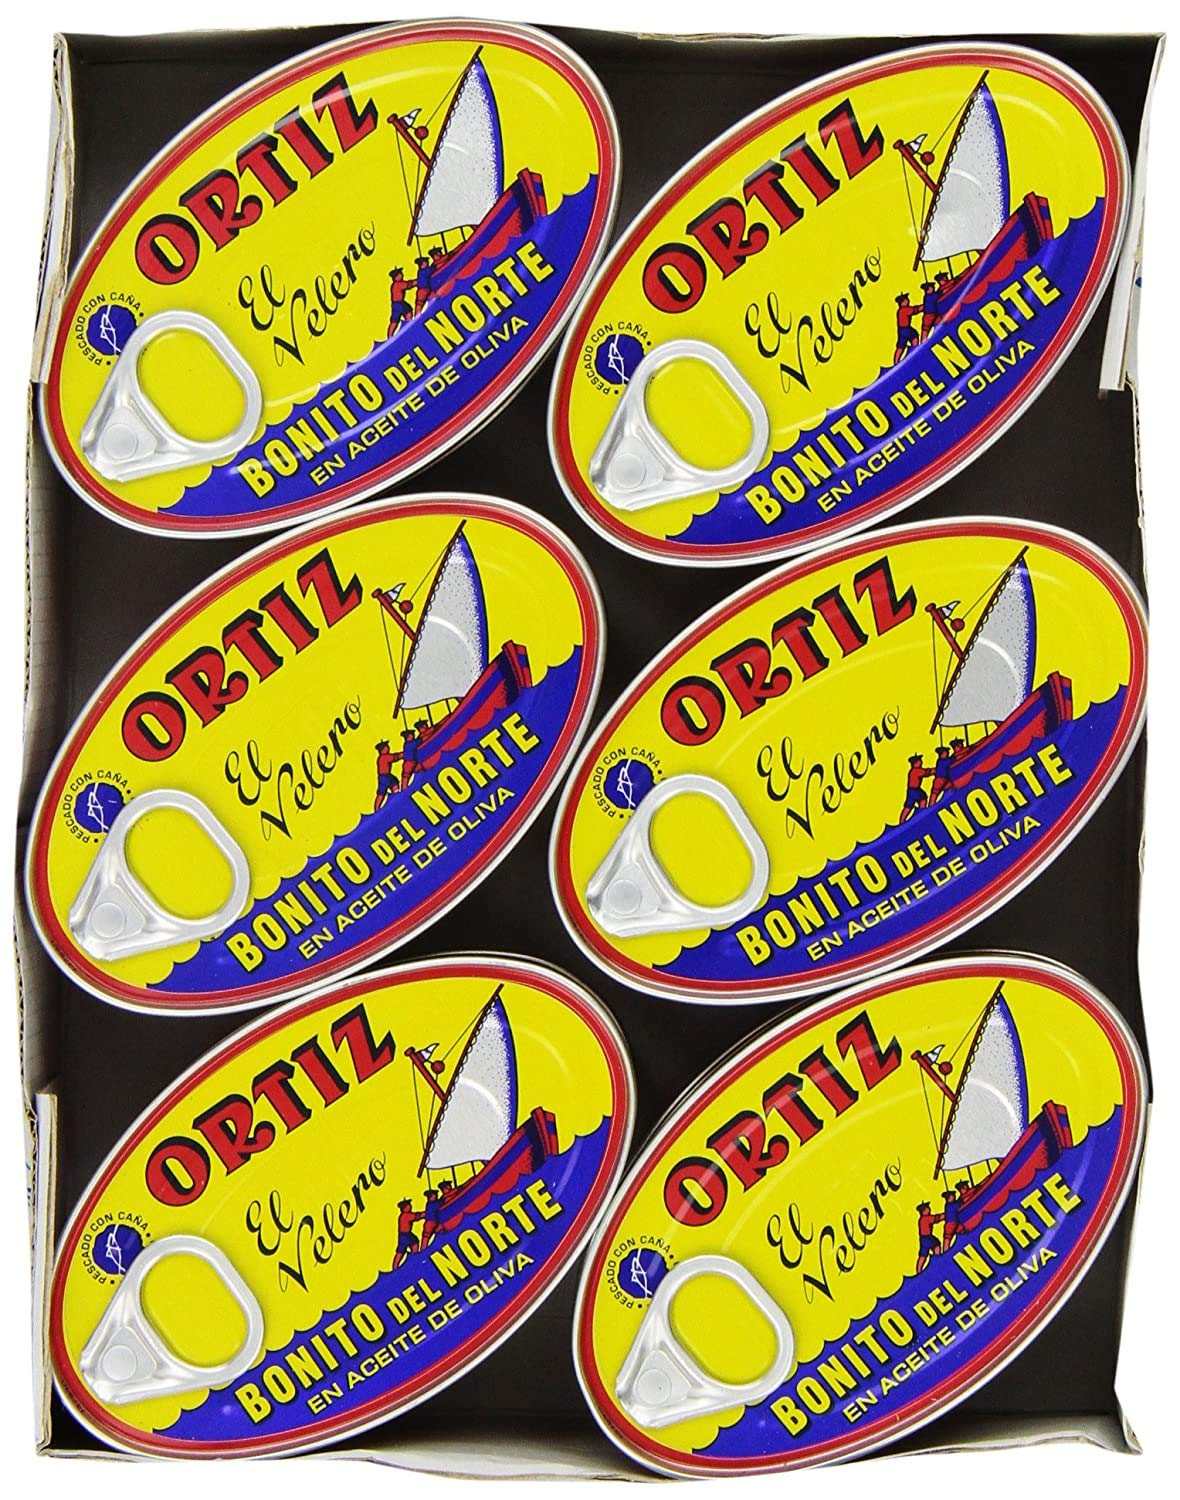 Ortiz Bonito Del Norte Tuna In Olive OIl 3.95 oz Oval Tin